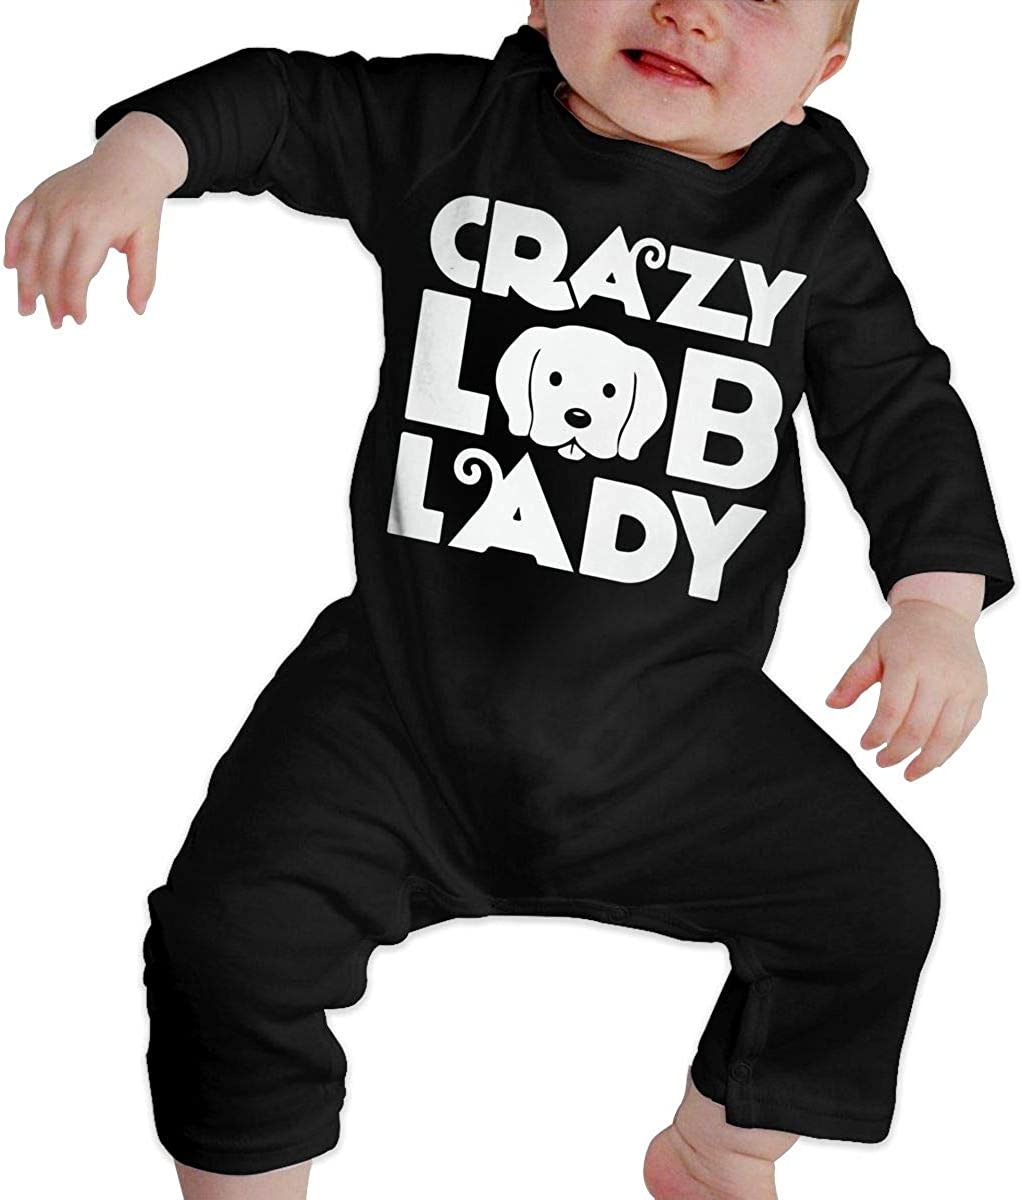 BKNGDG8Q Baby Boys Romper Jumpsuit Crazy Lab Lady Organic One-Piece Bodysuits Coverall Outfits